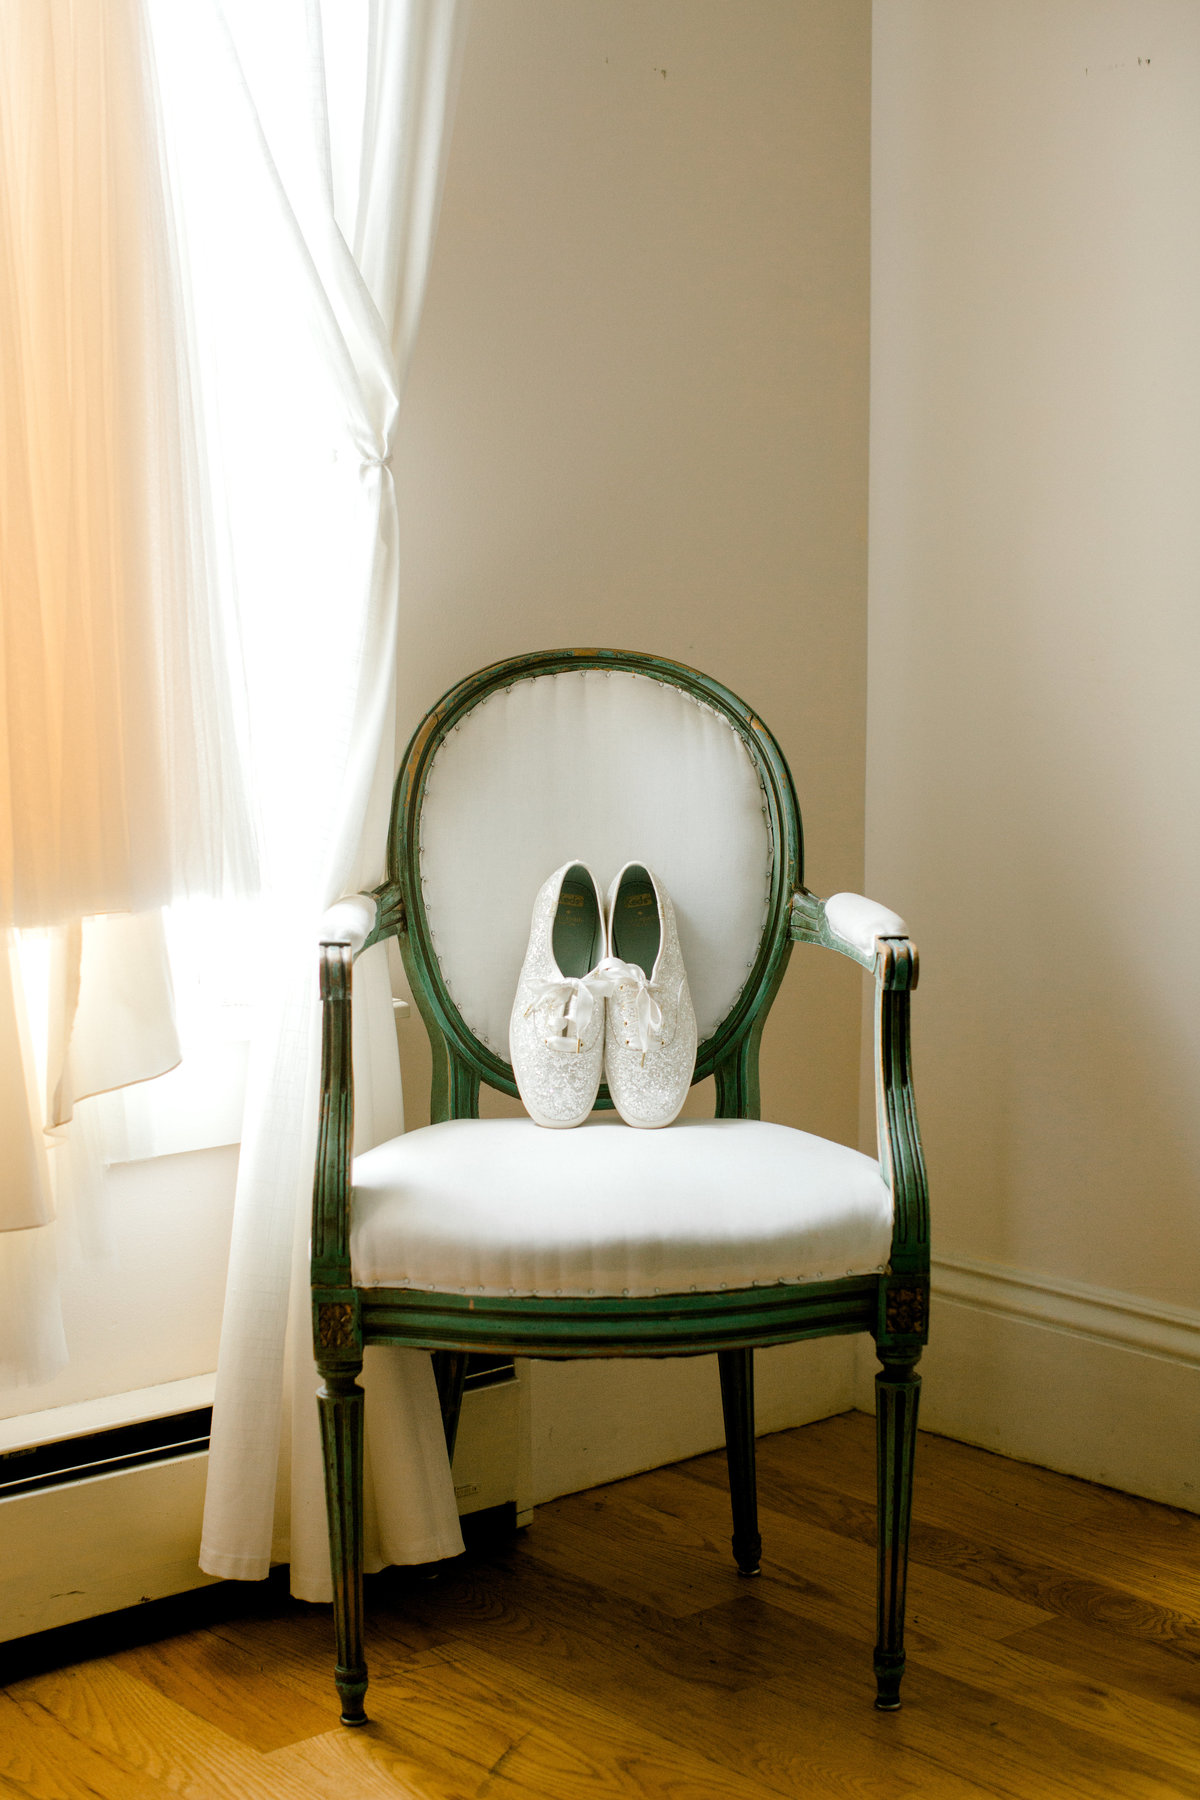 Kate spade sparkle keds on chair in bridal suite at Olympias Valley Estate in Petaluma California